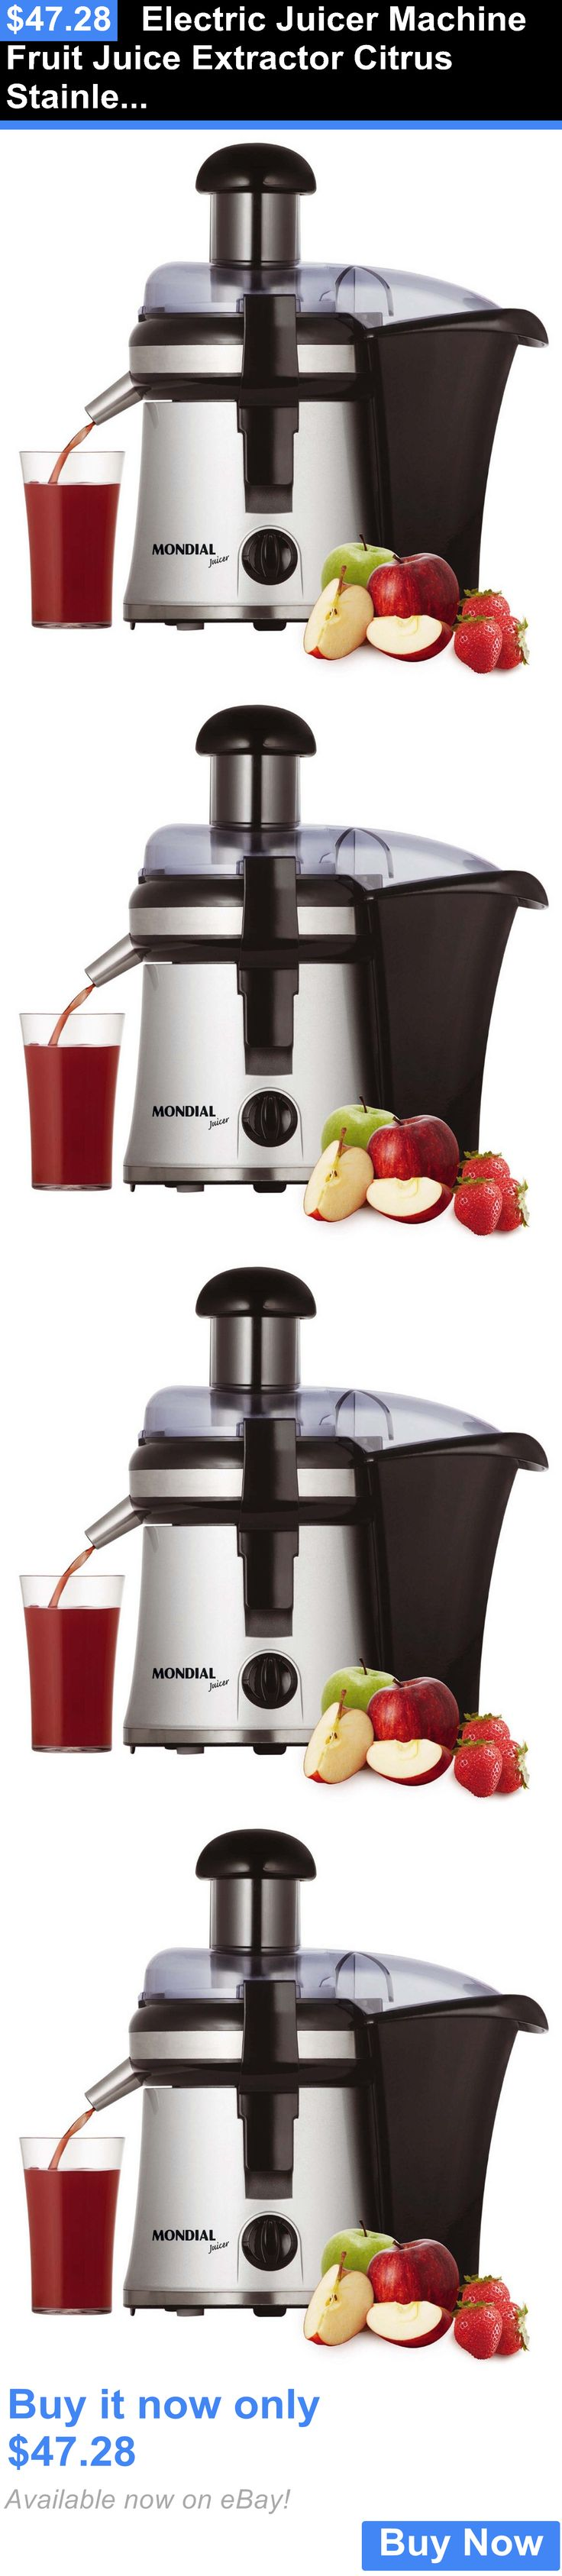 appliances: Electric Juicer Machine Fruit Juice Extractor Citrus Stainless Steel Press New BUY IT NOW ONLY: $47.28